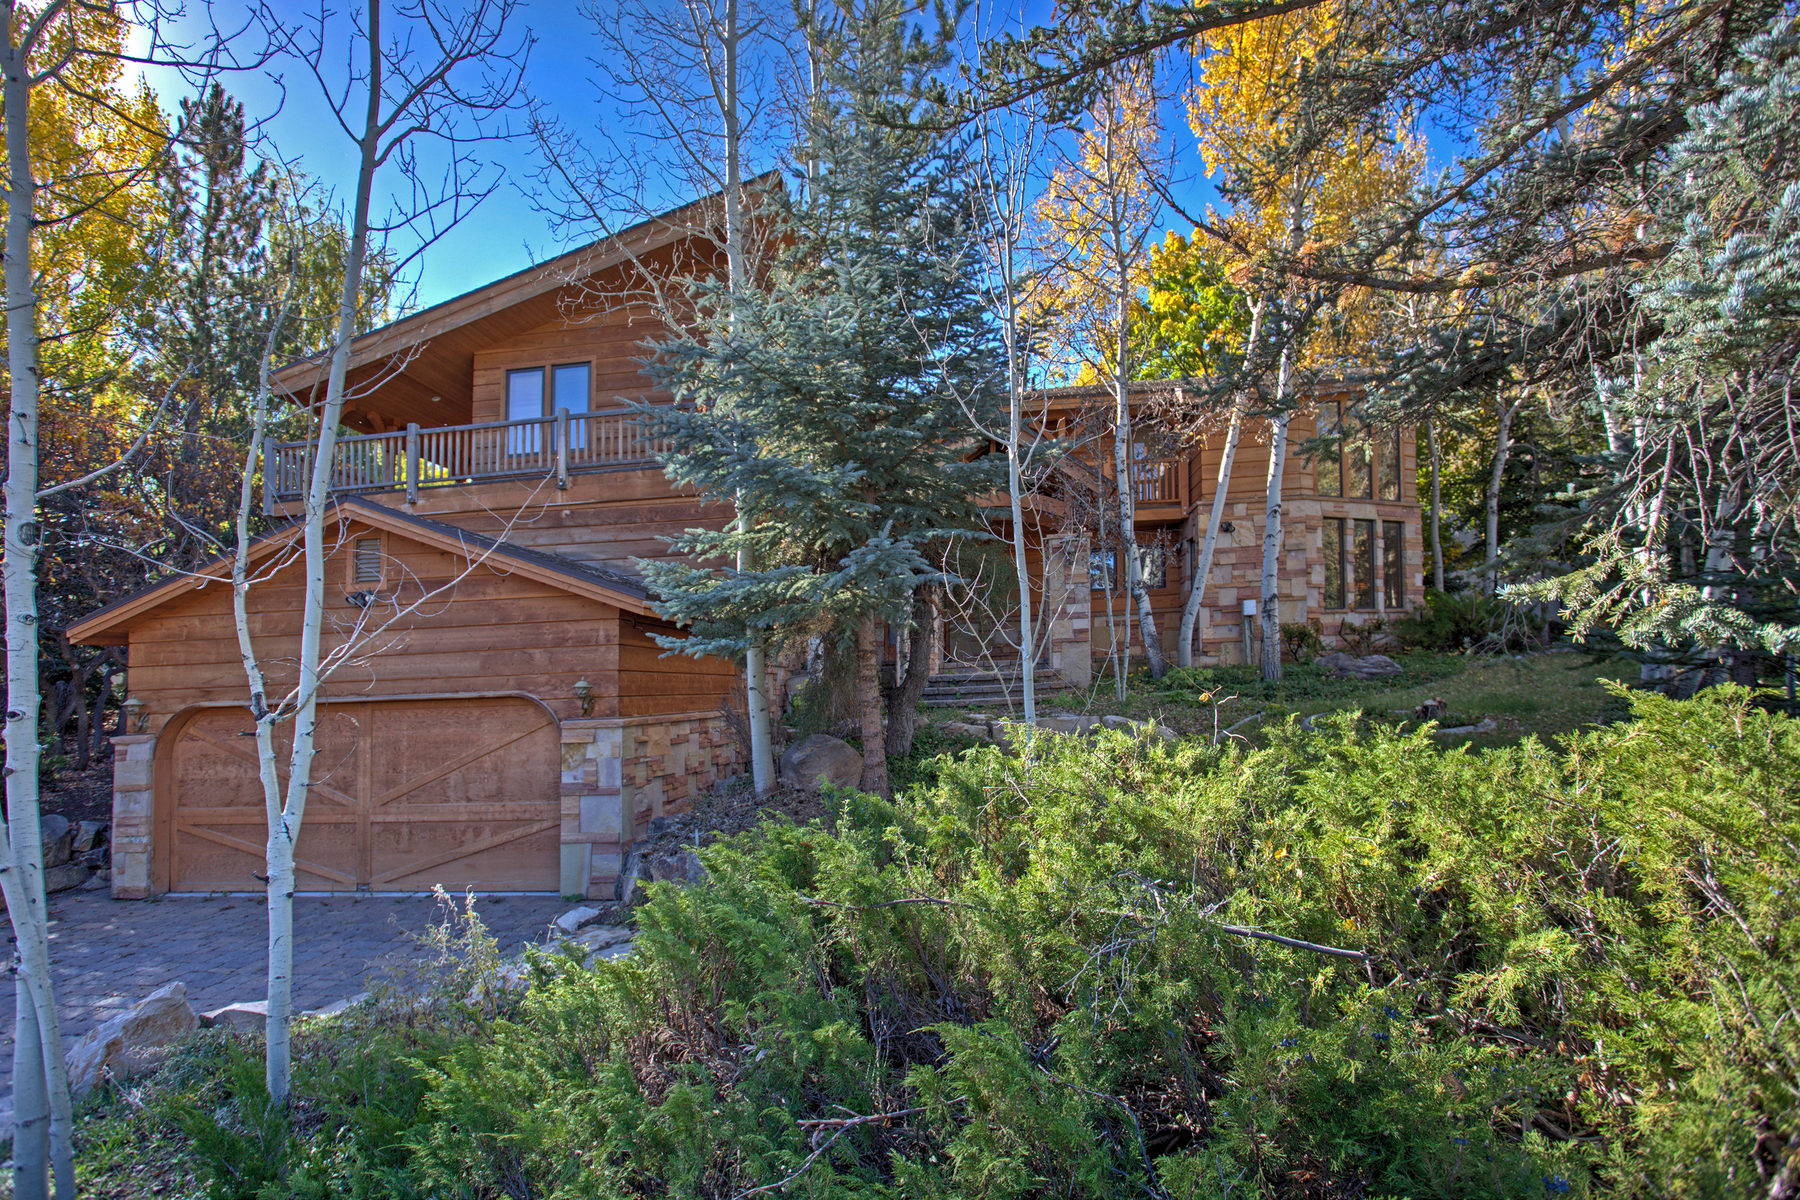 Single Family Home for Sale at Remodel Opportunity in Beautiful Thaynes Canyon 67 Thaynes Canyon Dr Park City, Utah 84060 United States